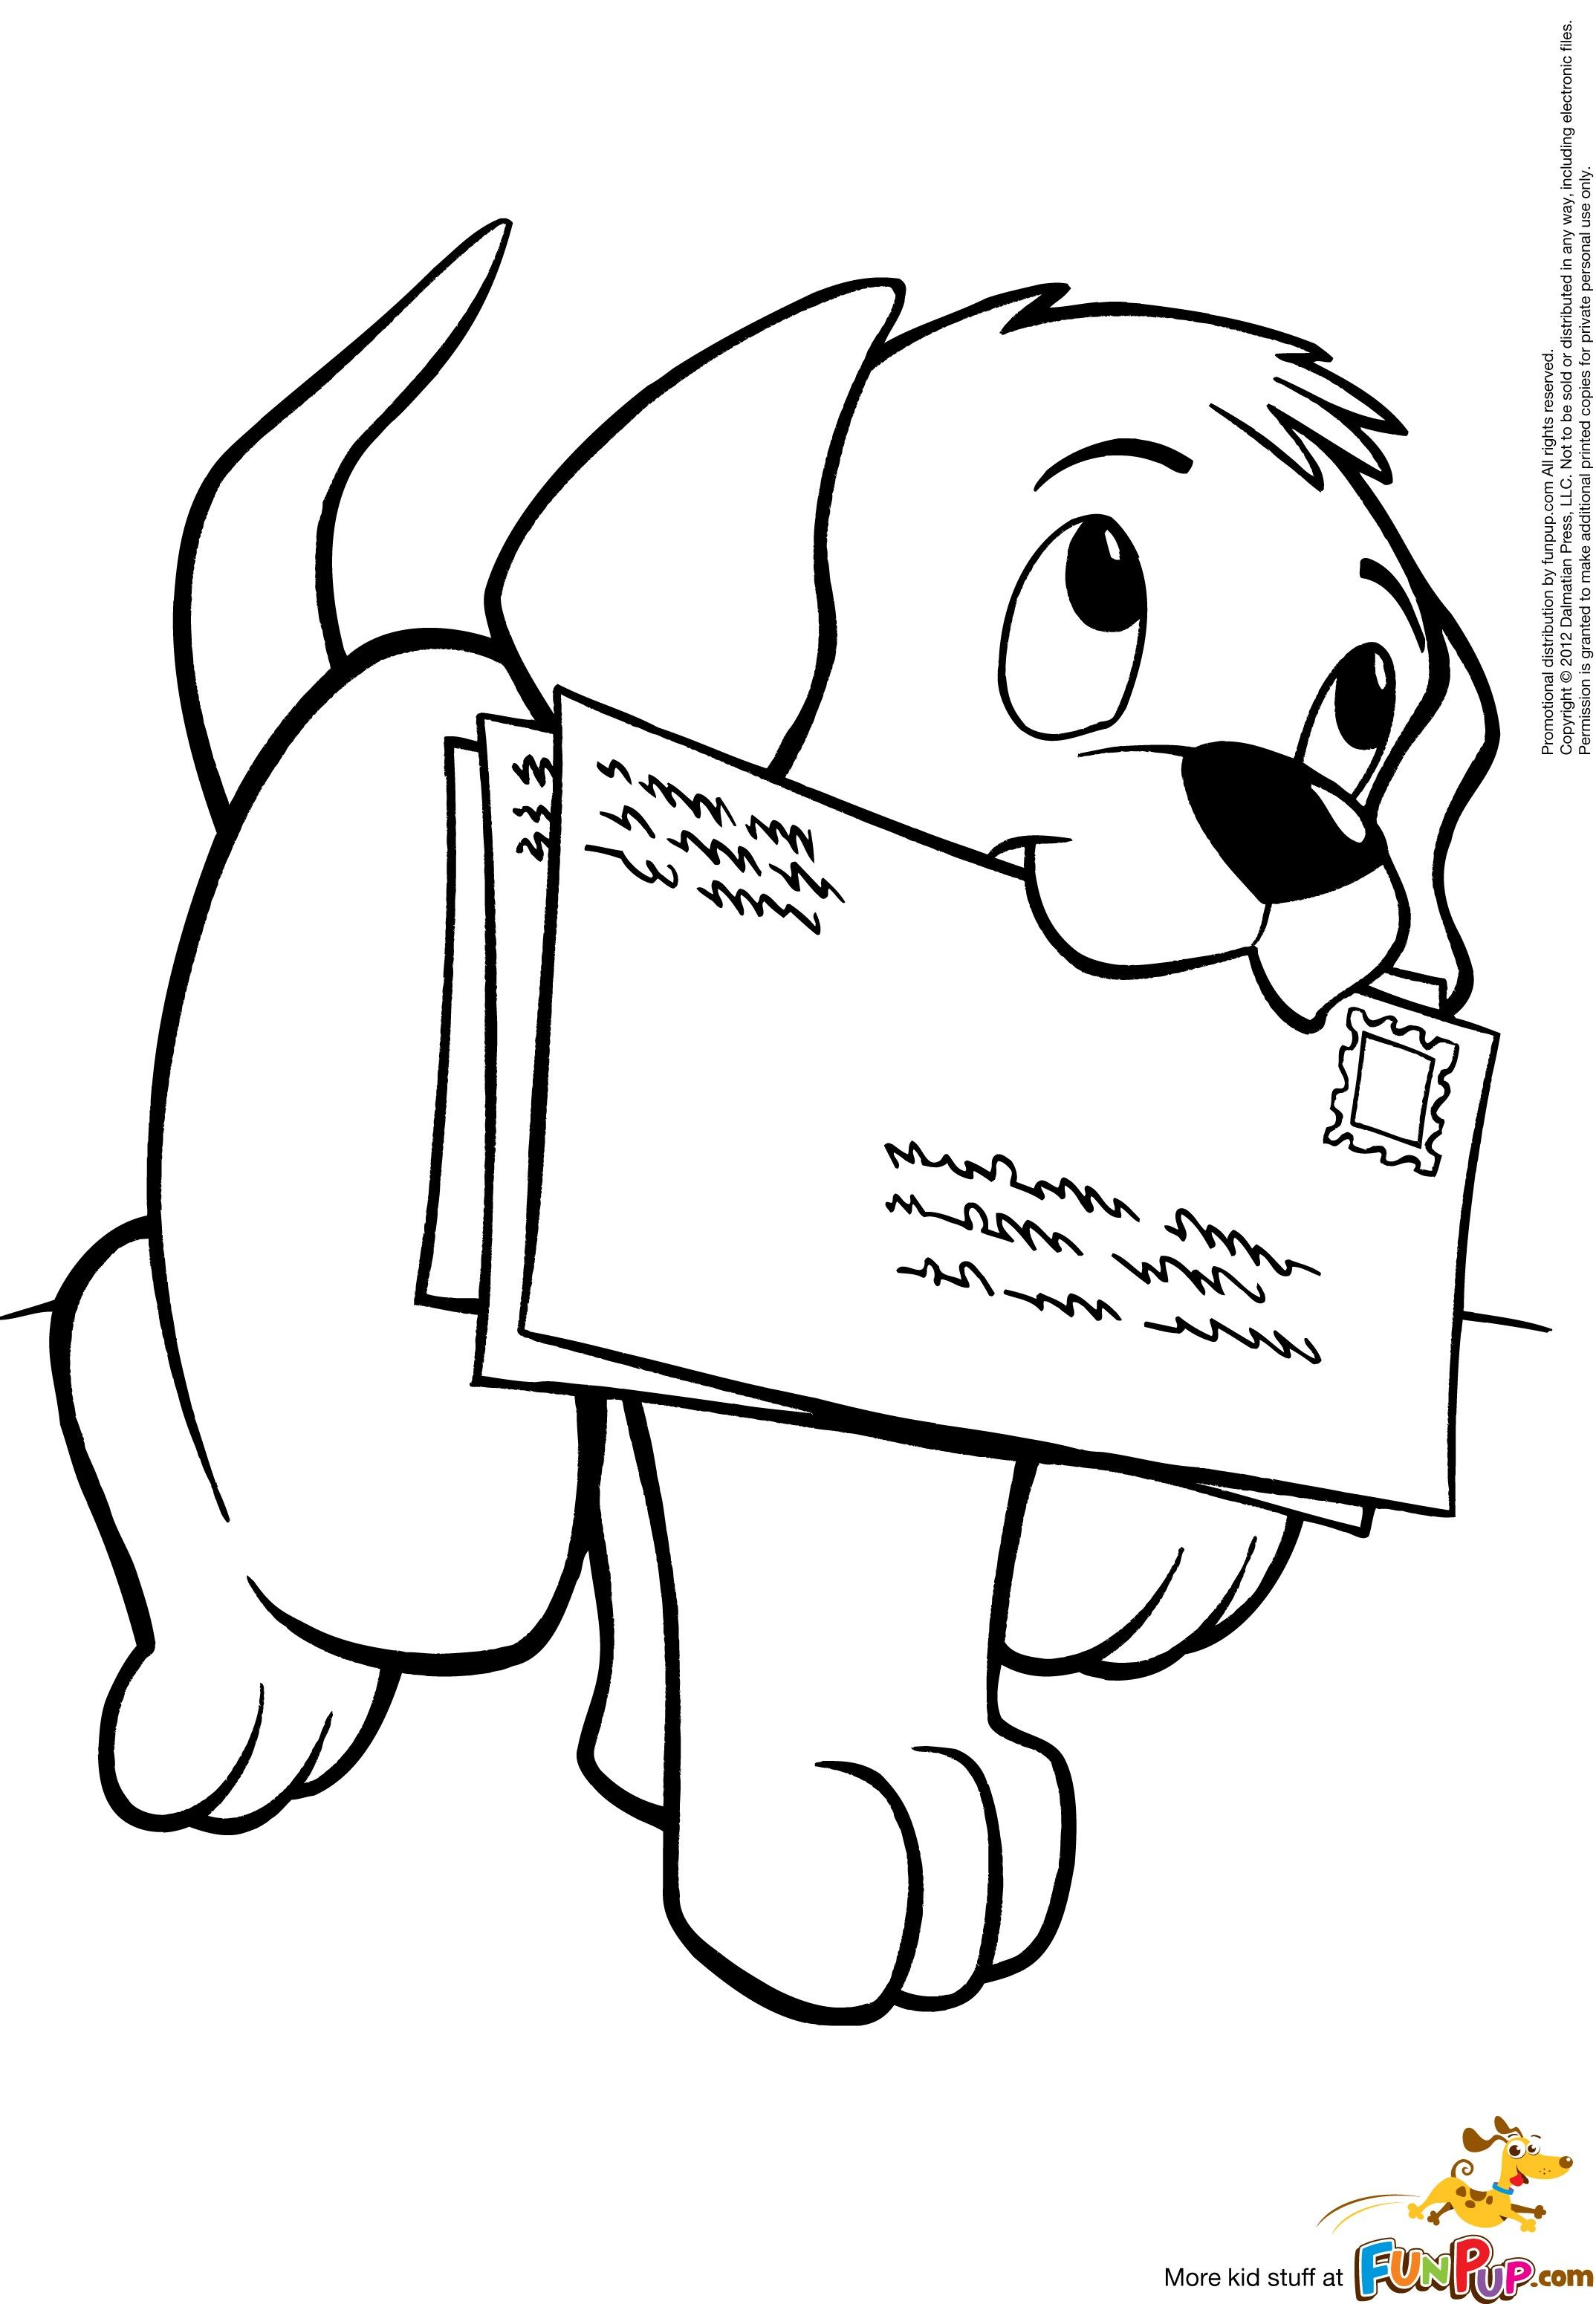 2148x3101 Cute Dog Coloring Pages Free Printable Printables Within